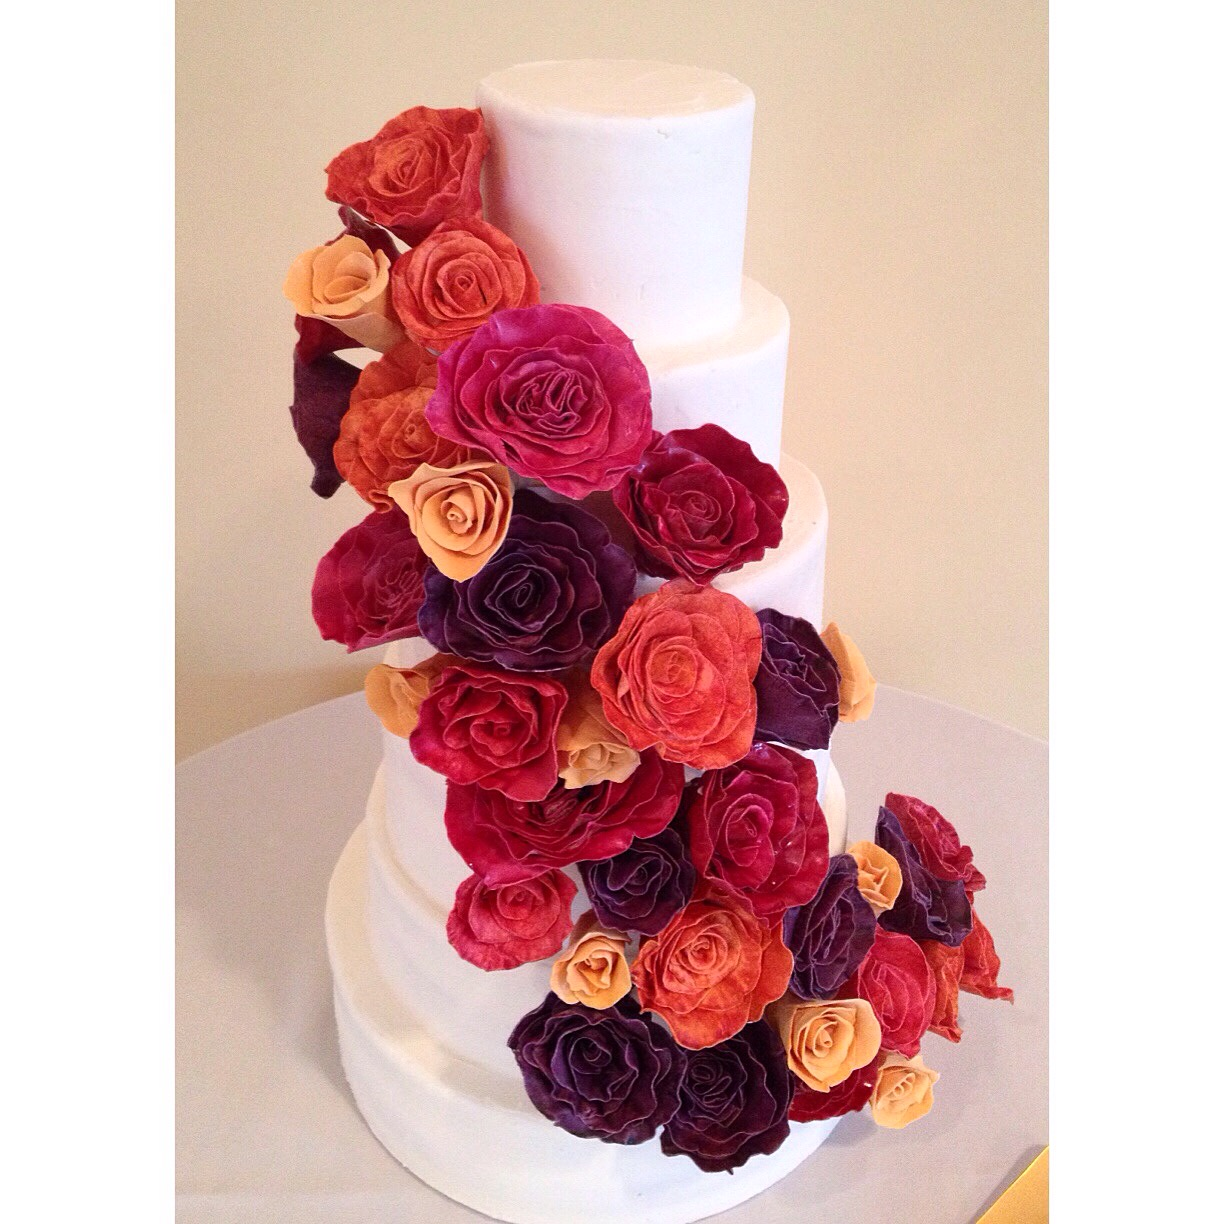 Cincinnati wedding cake fondant roses